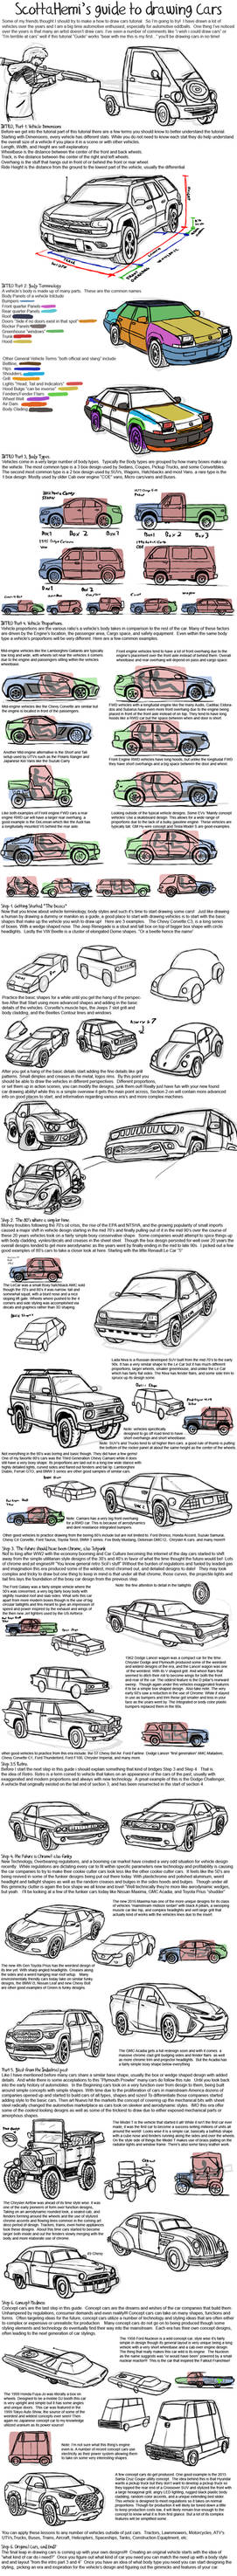 ScottaHemi's guide to drawing cars